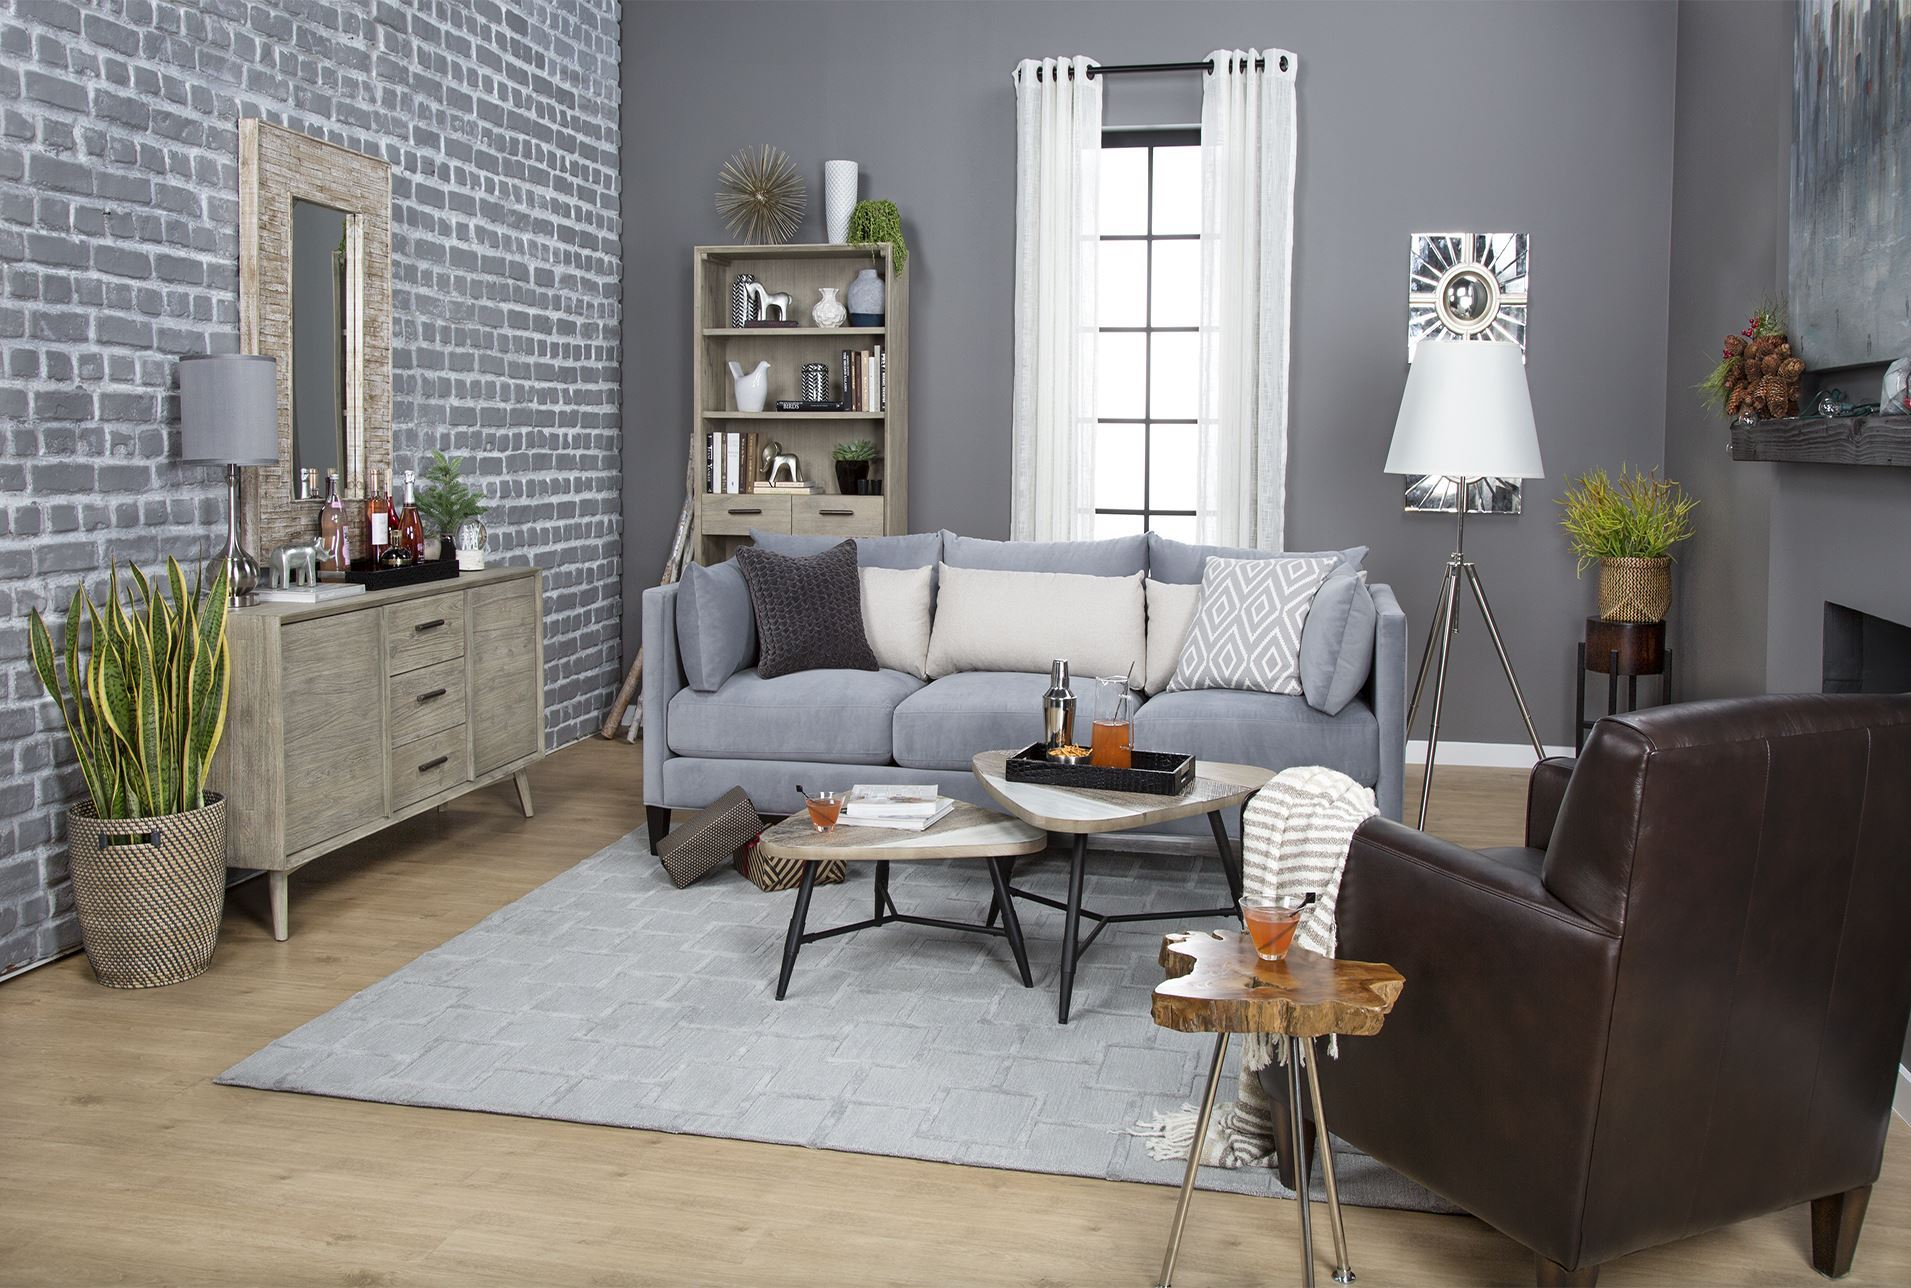 Dining Room Sets Living Spaces Newsgr in 11 Some of the Coolest Initiatives of How to Make Living Spaces Dining Room Sets